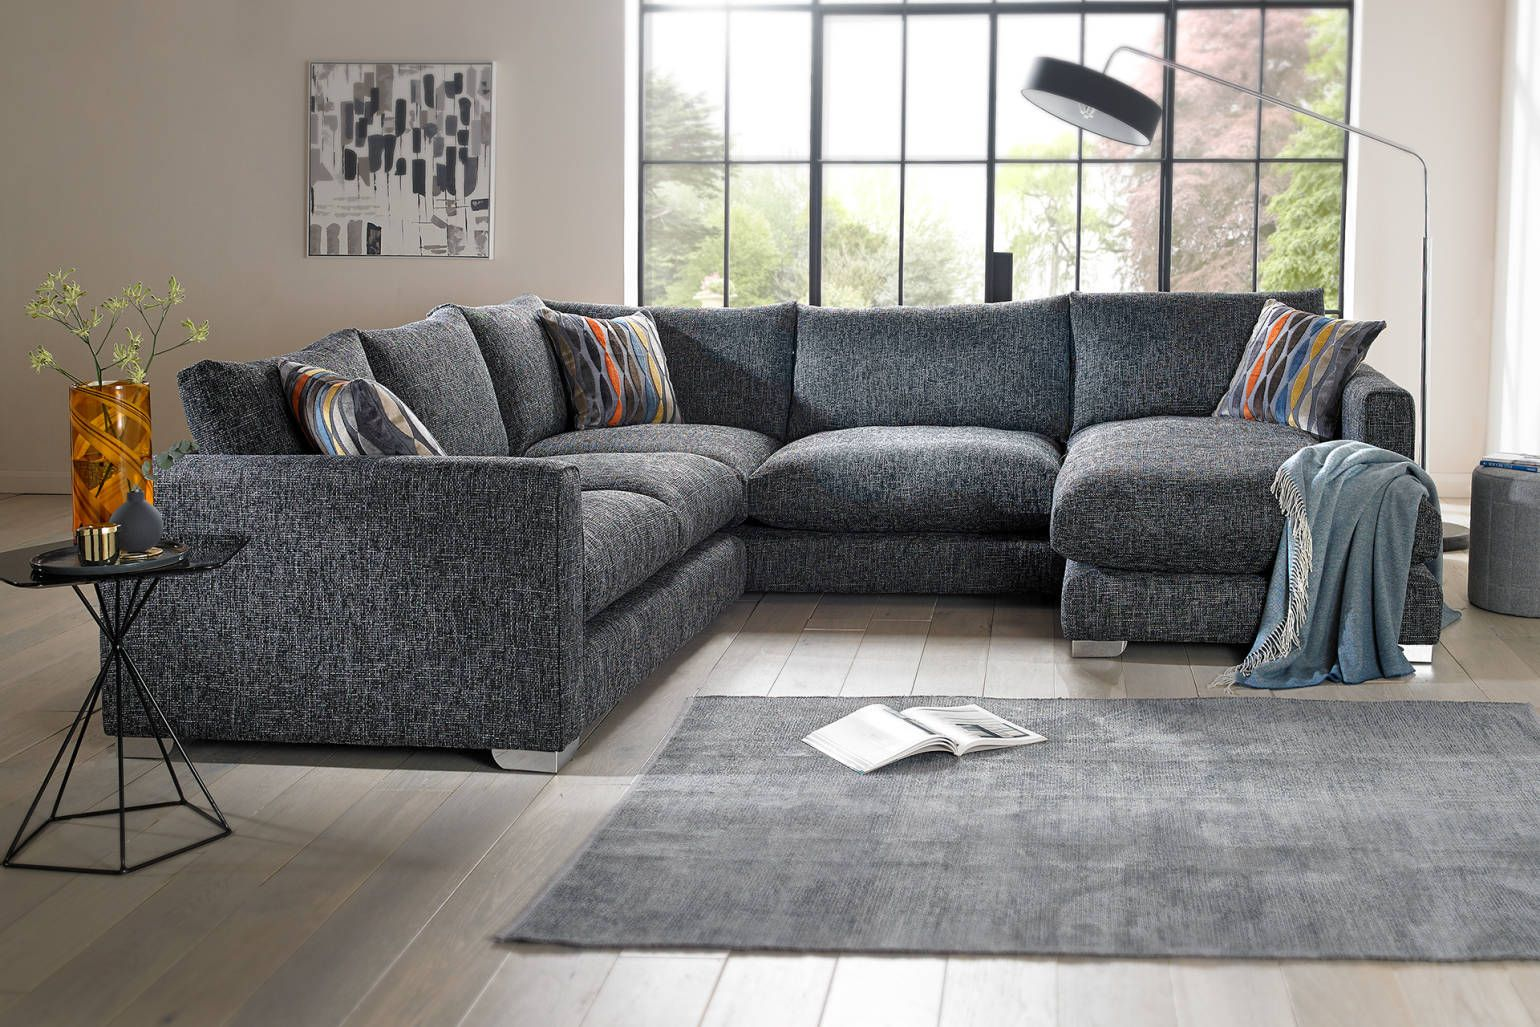 Majestic   Sofology   Leather Couch Living Room Decor, Couches Living Room, Leather Couches Living Room